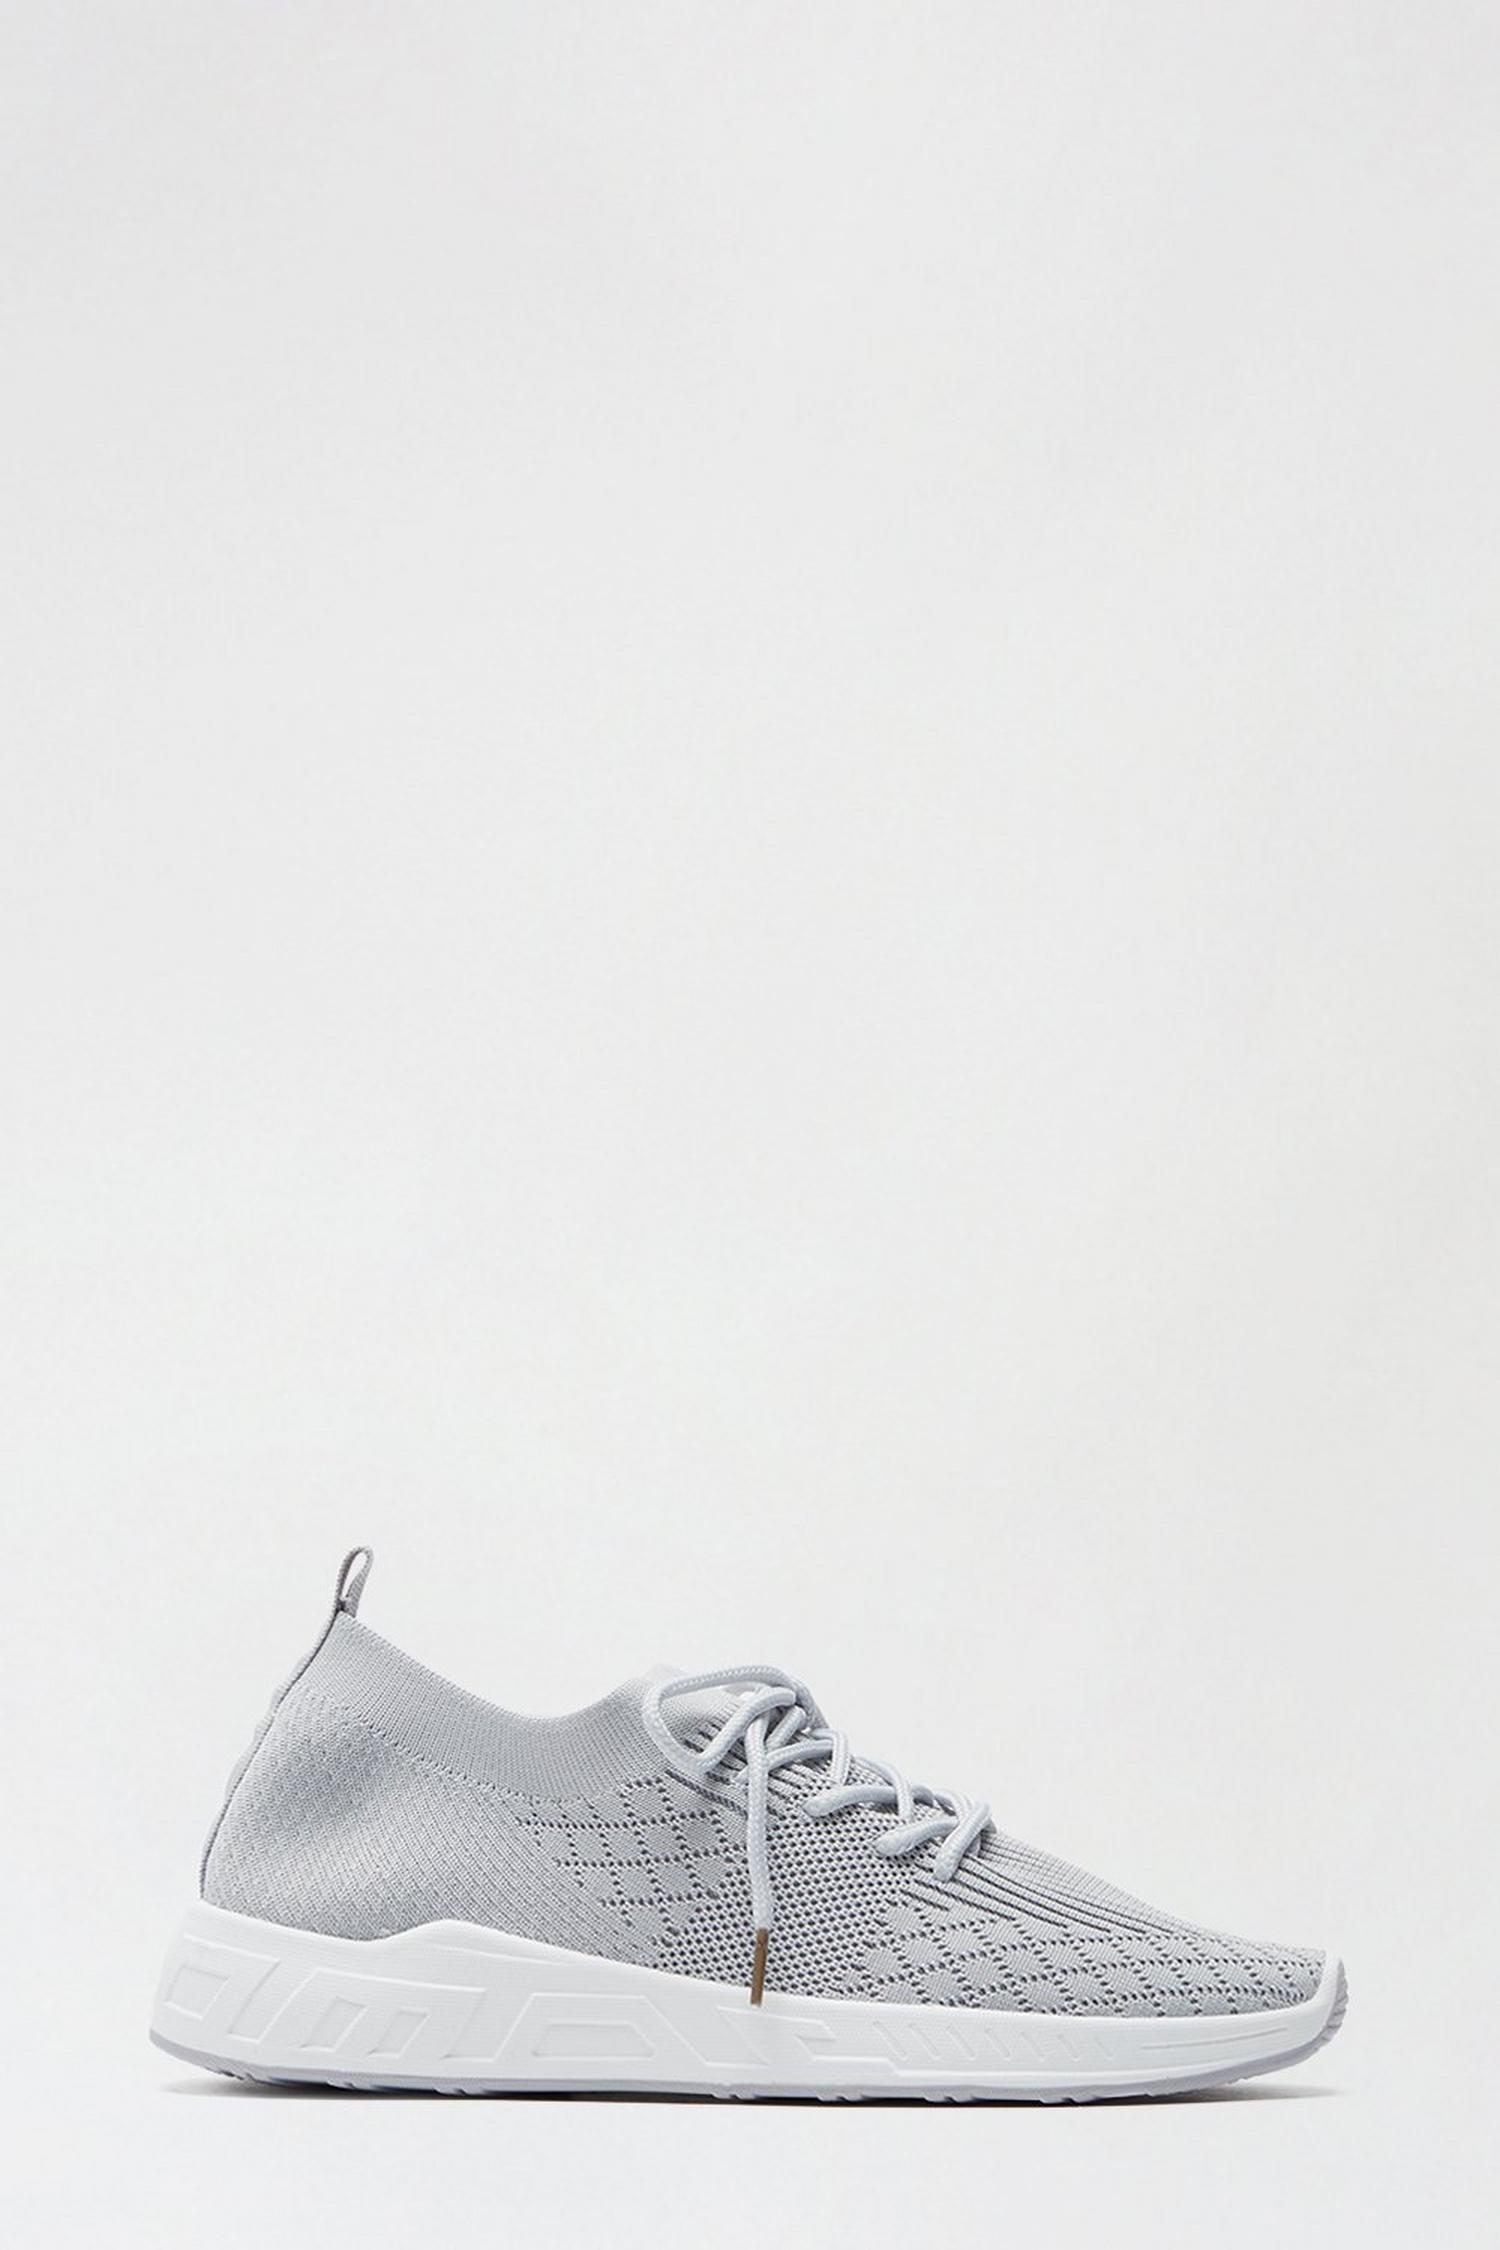 131 Grey Ivanna Knit Sports Trainer image number 1